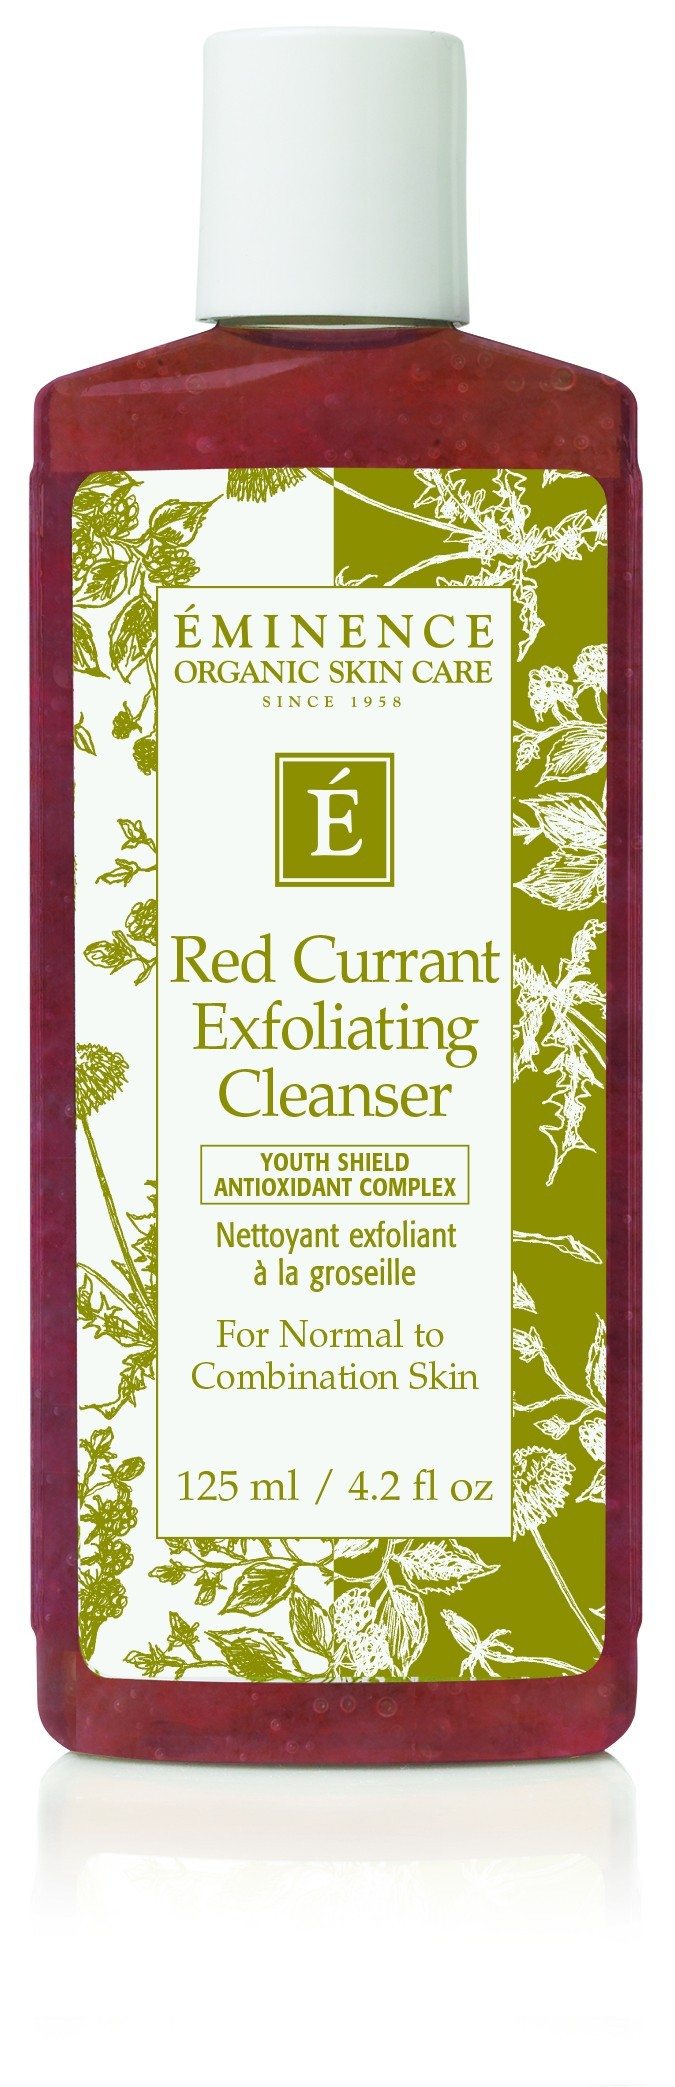 eminence-red-currant-exfoliating-cleanser.jpg